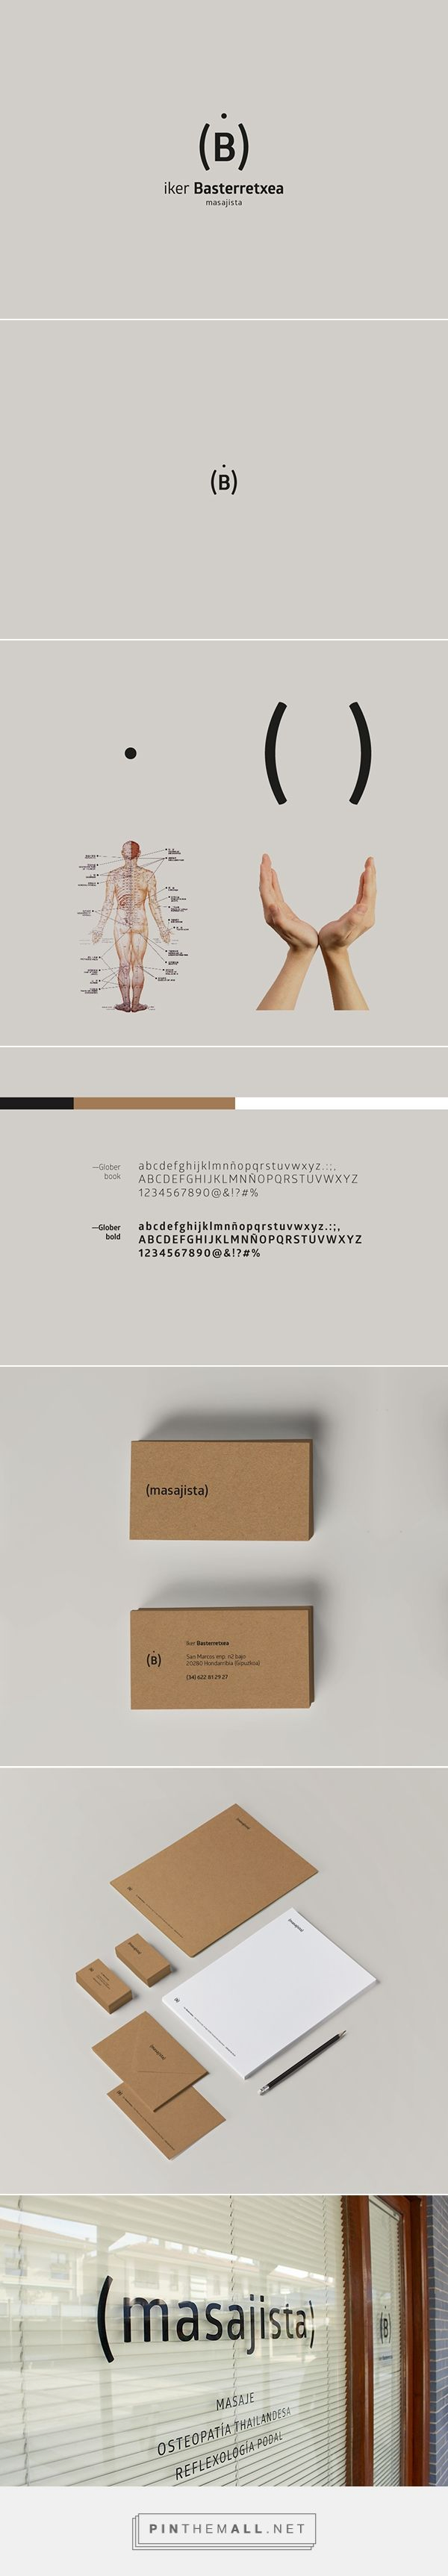 Iker Basterretxea on Behance... - a grouped images picture - Pin Them All